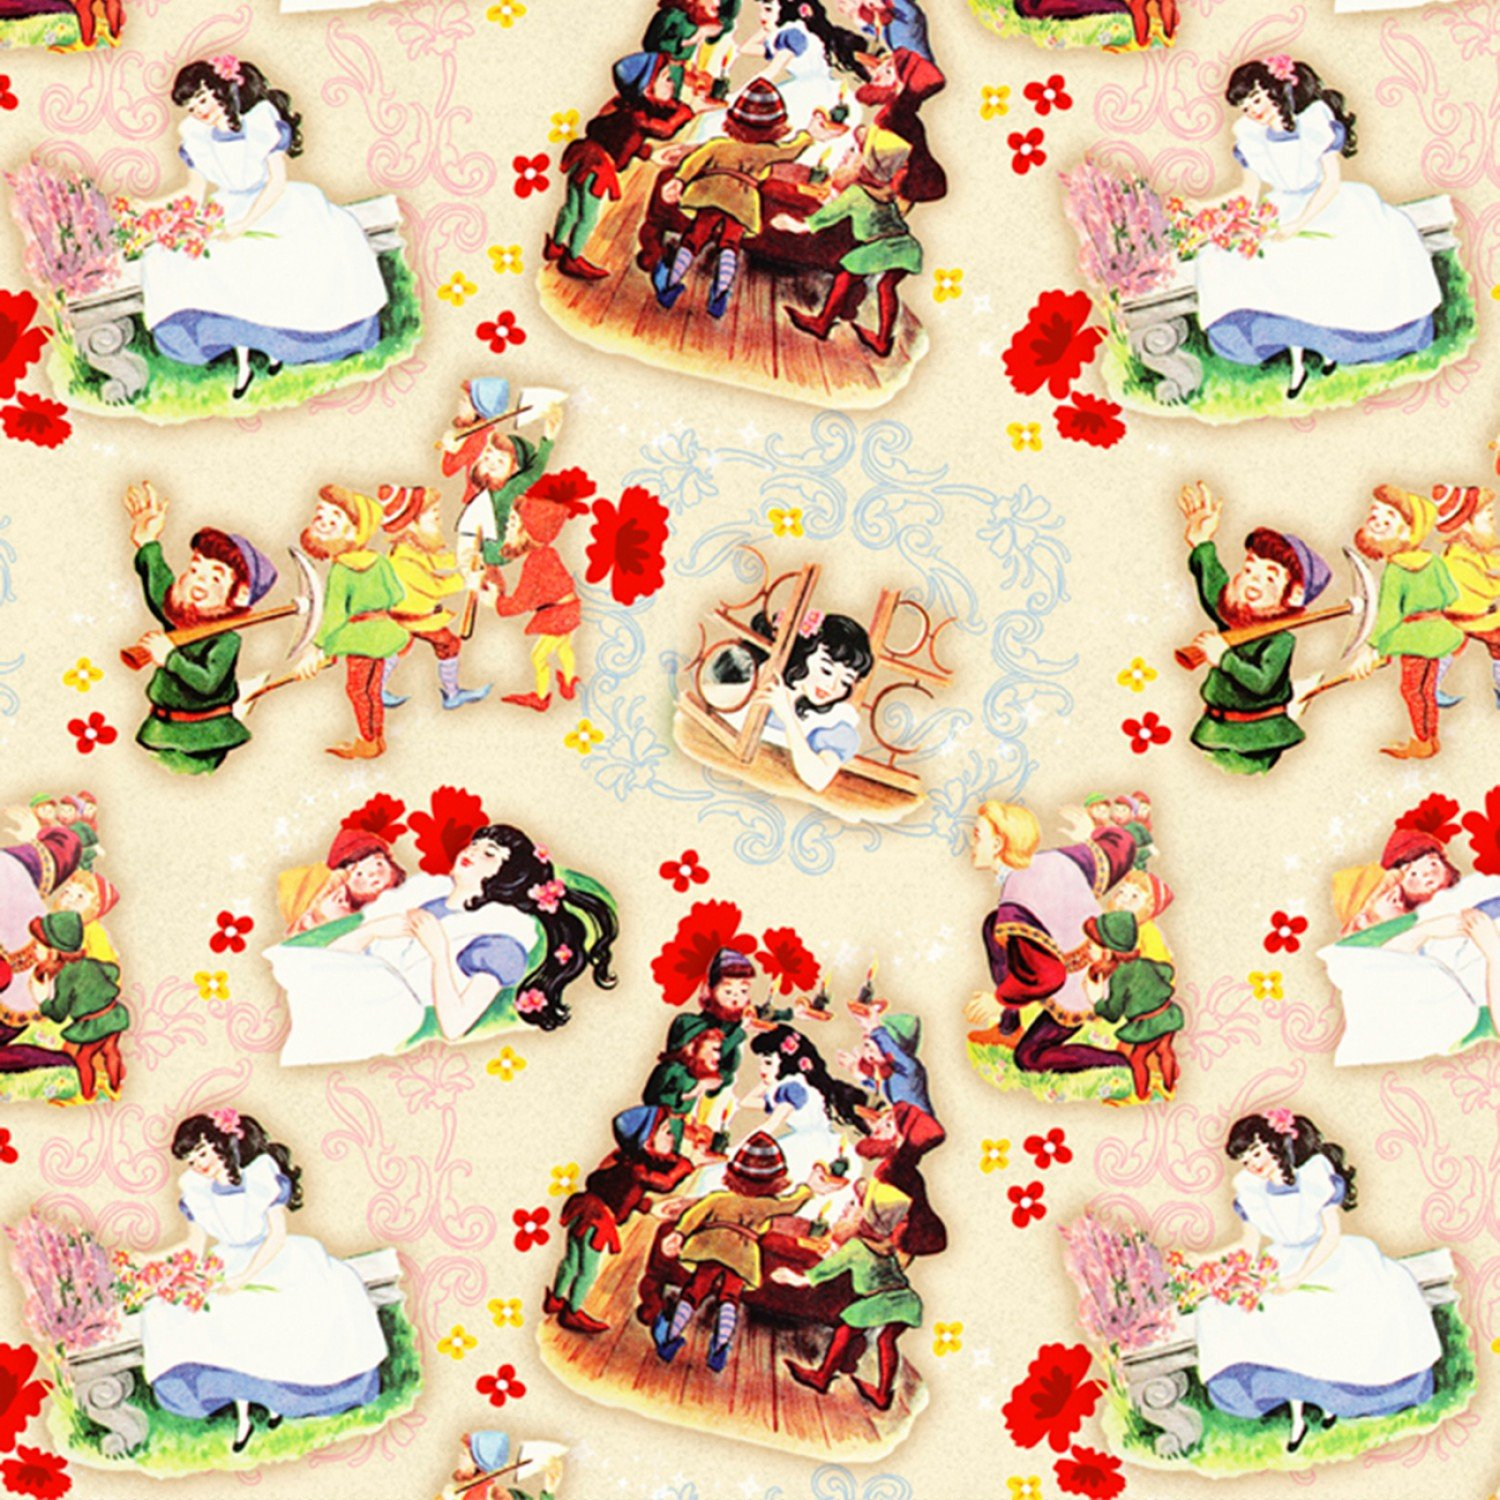 Snow White Children's Fabric Yardage 44-45 Inches Wide